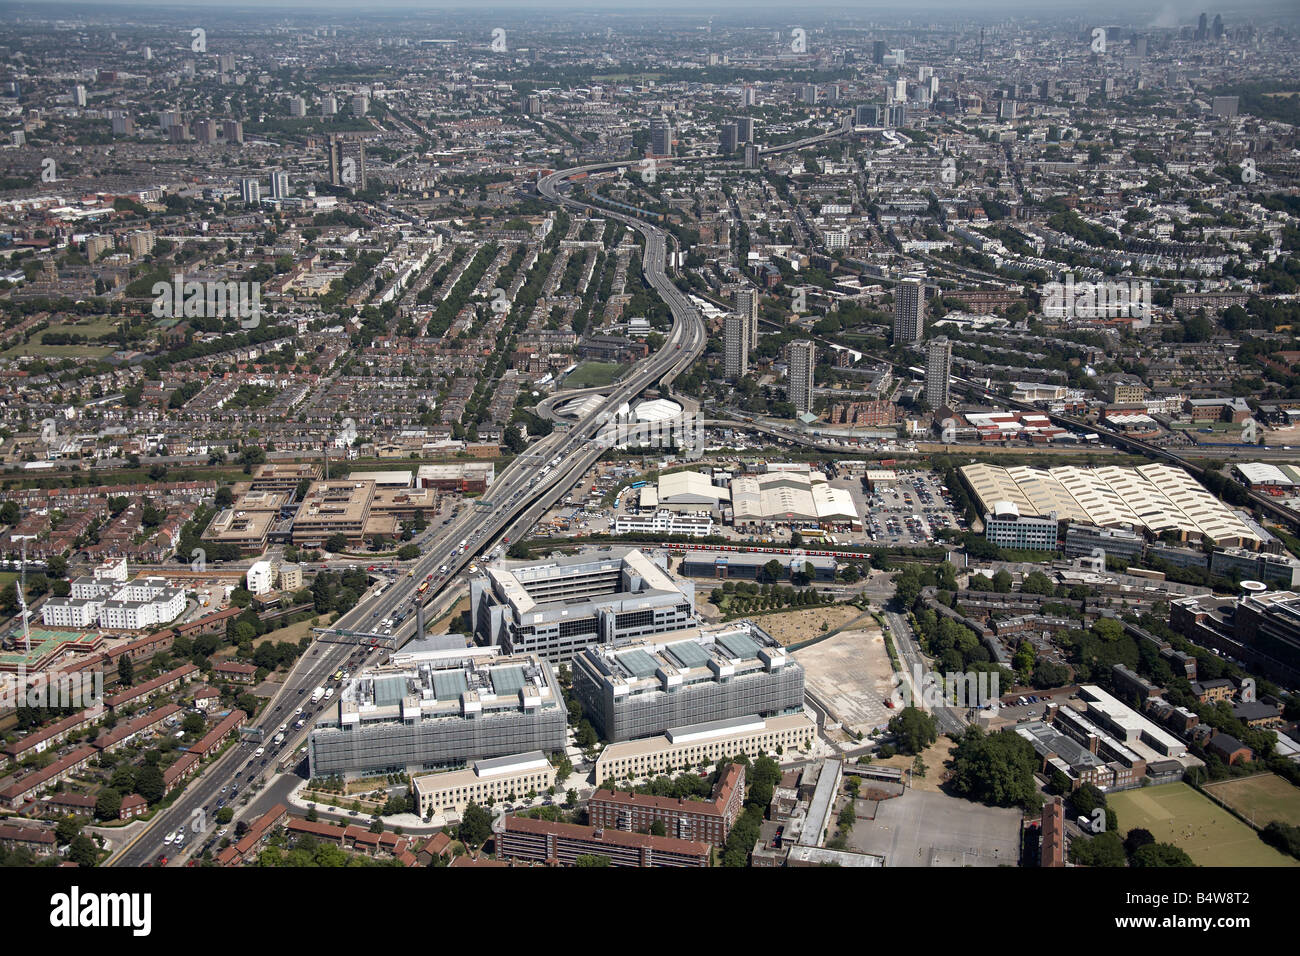 Aerial view north east of Westway A40 BBC offices White City suburban housing tower blocks London W10 W11 W12 UK - Stock Image